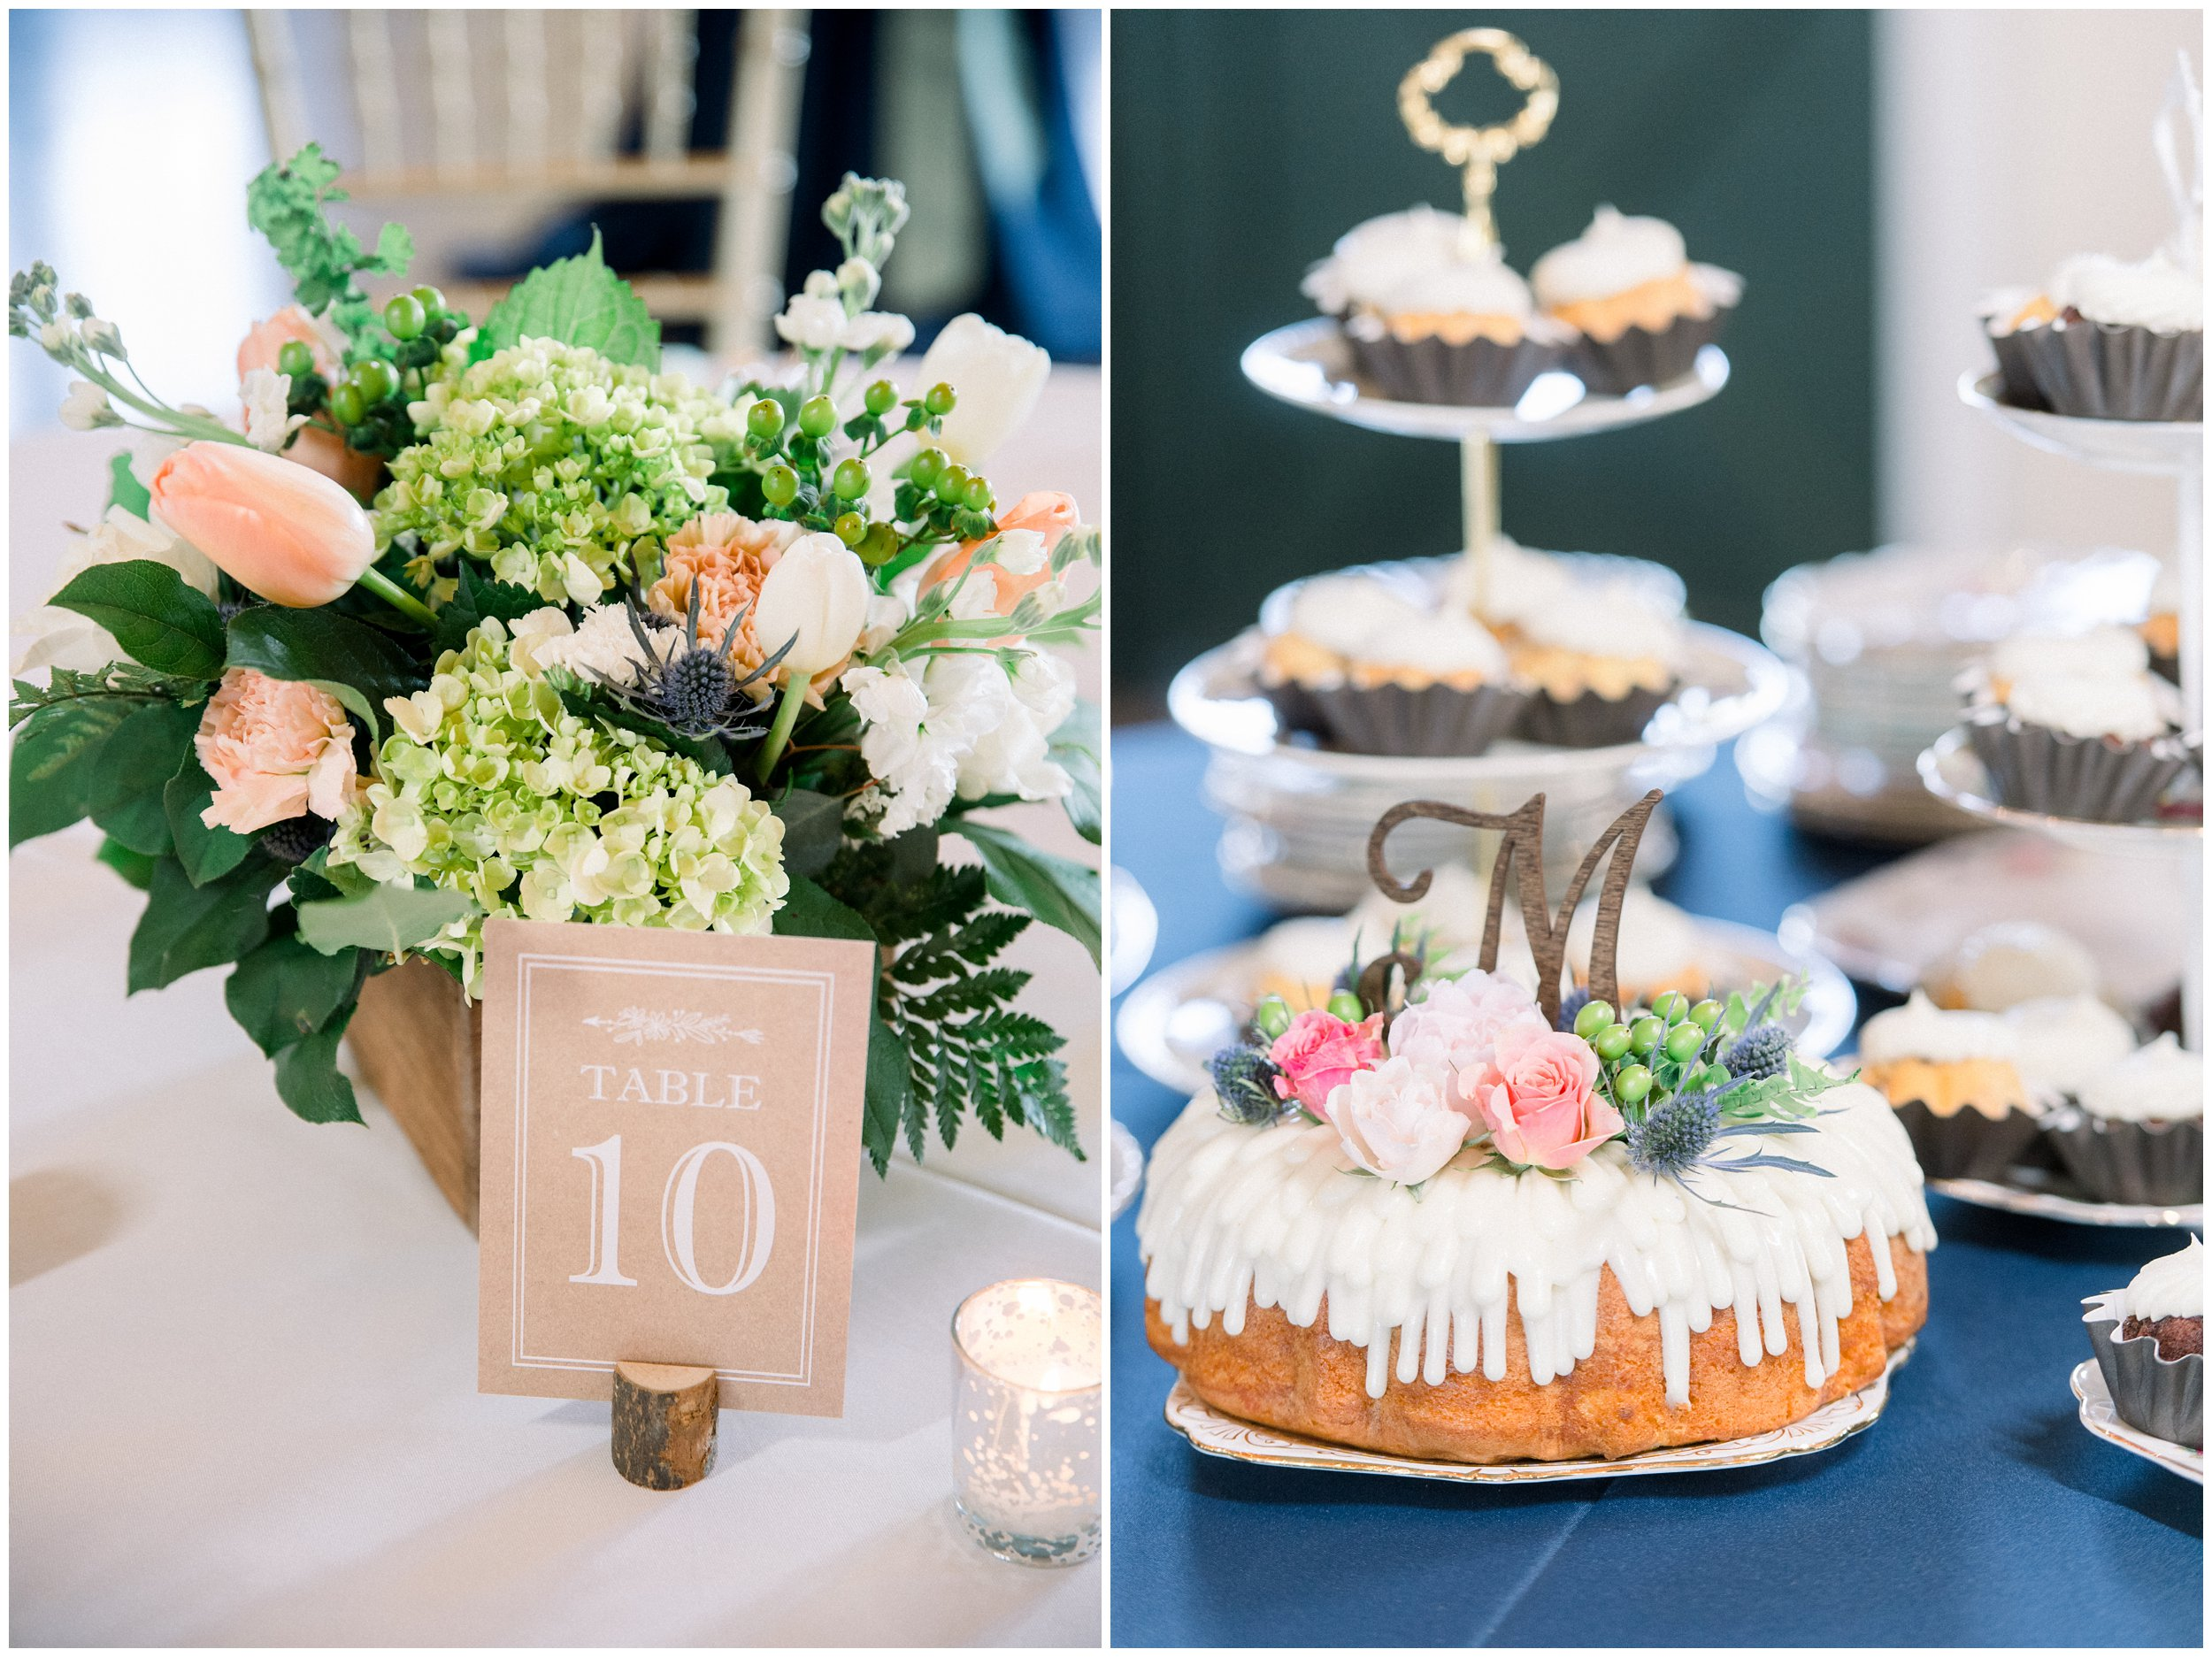 tablescape and cake details